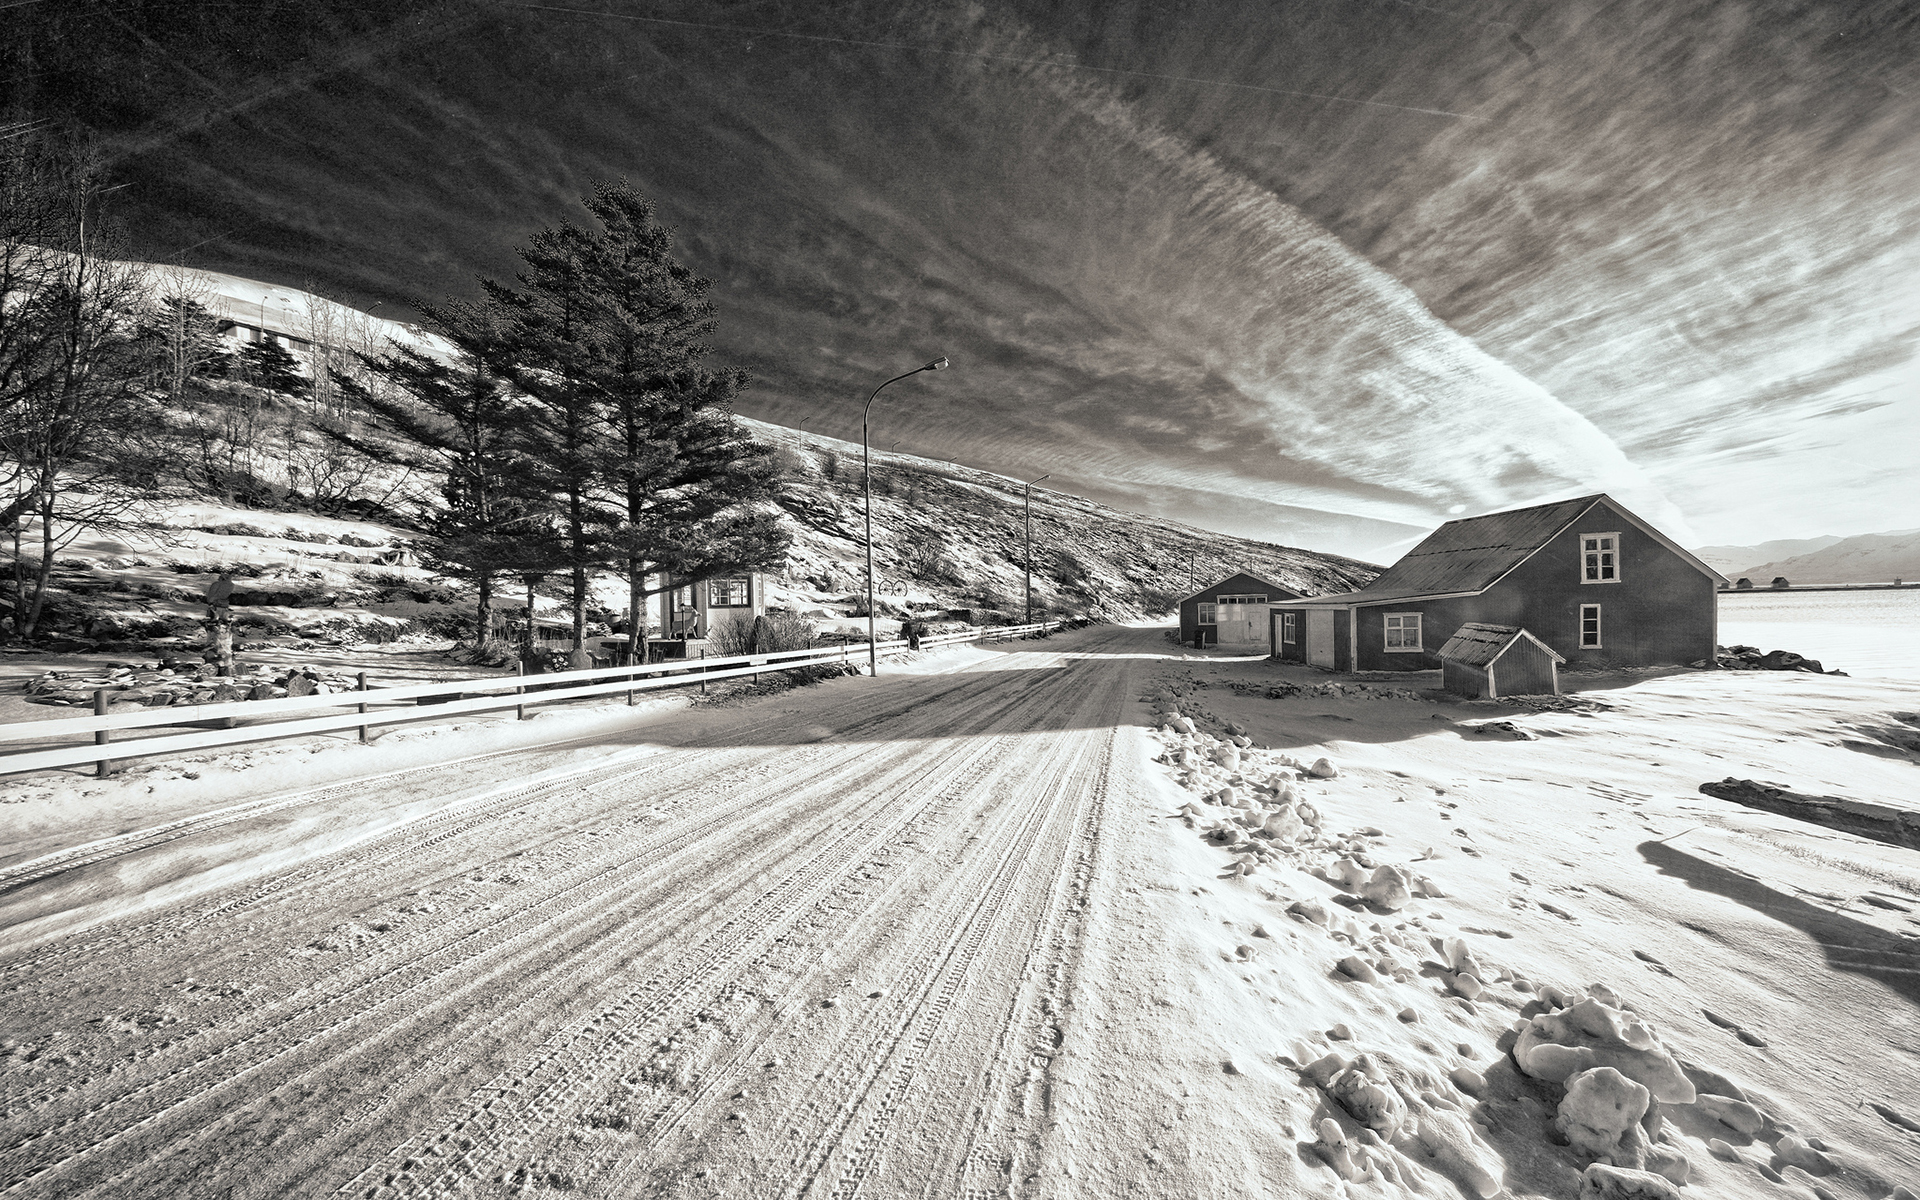 Snow Winter Road House Bw Trees Black White Roads Architecture Houses Sky Clouds Wallpaper 1920x1200 44245 Wallpaperup